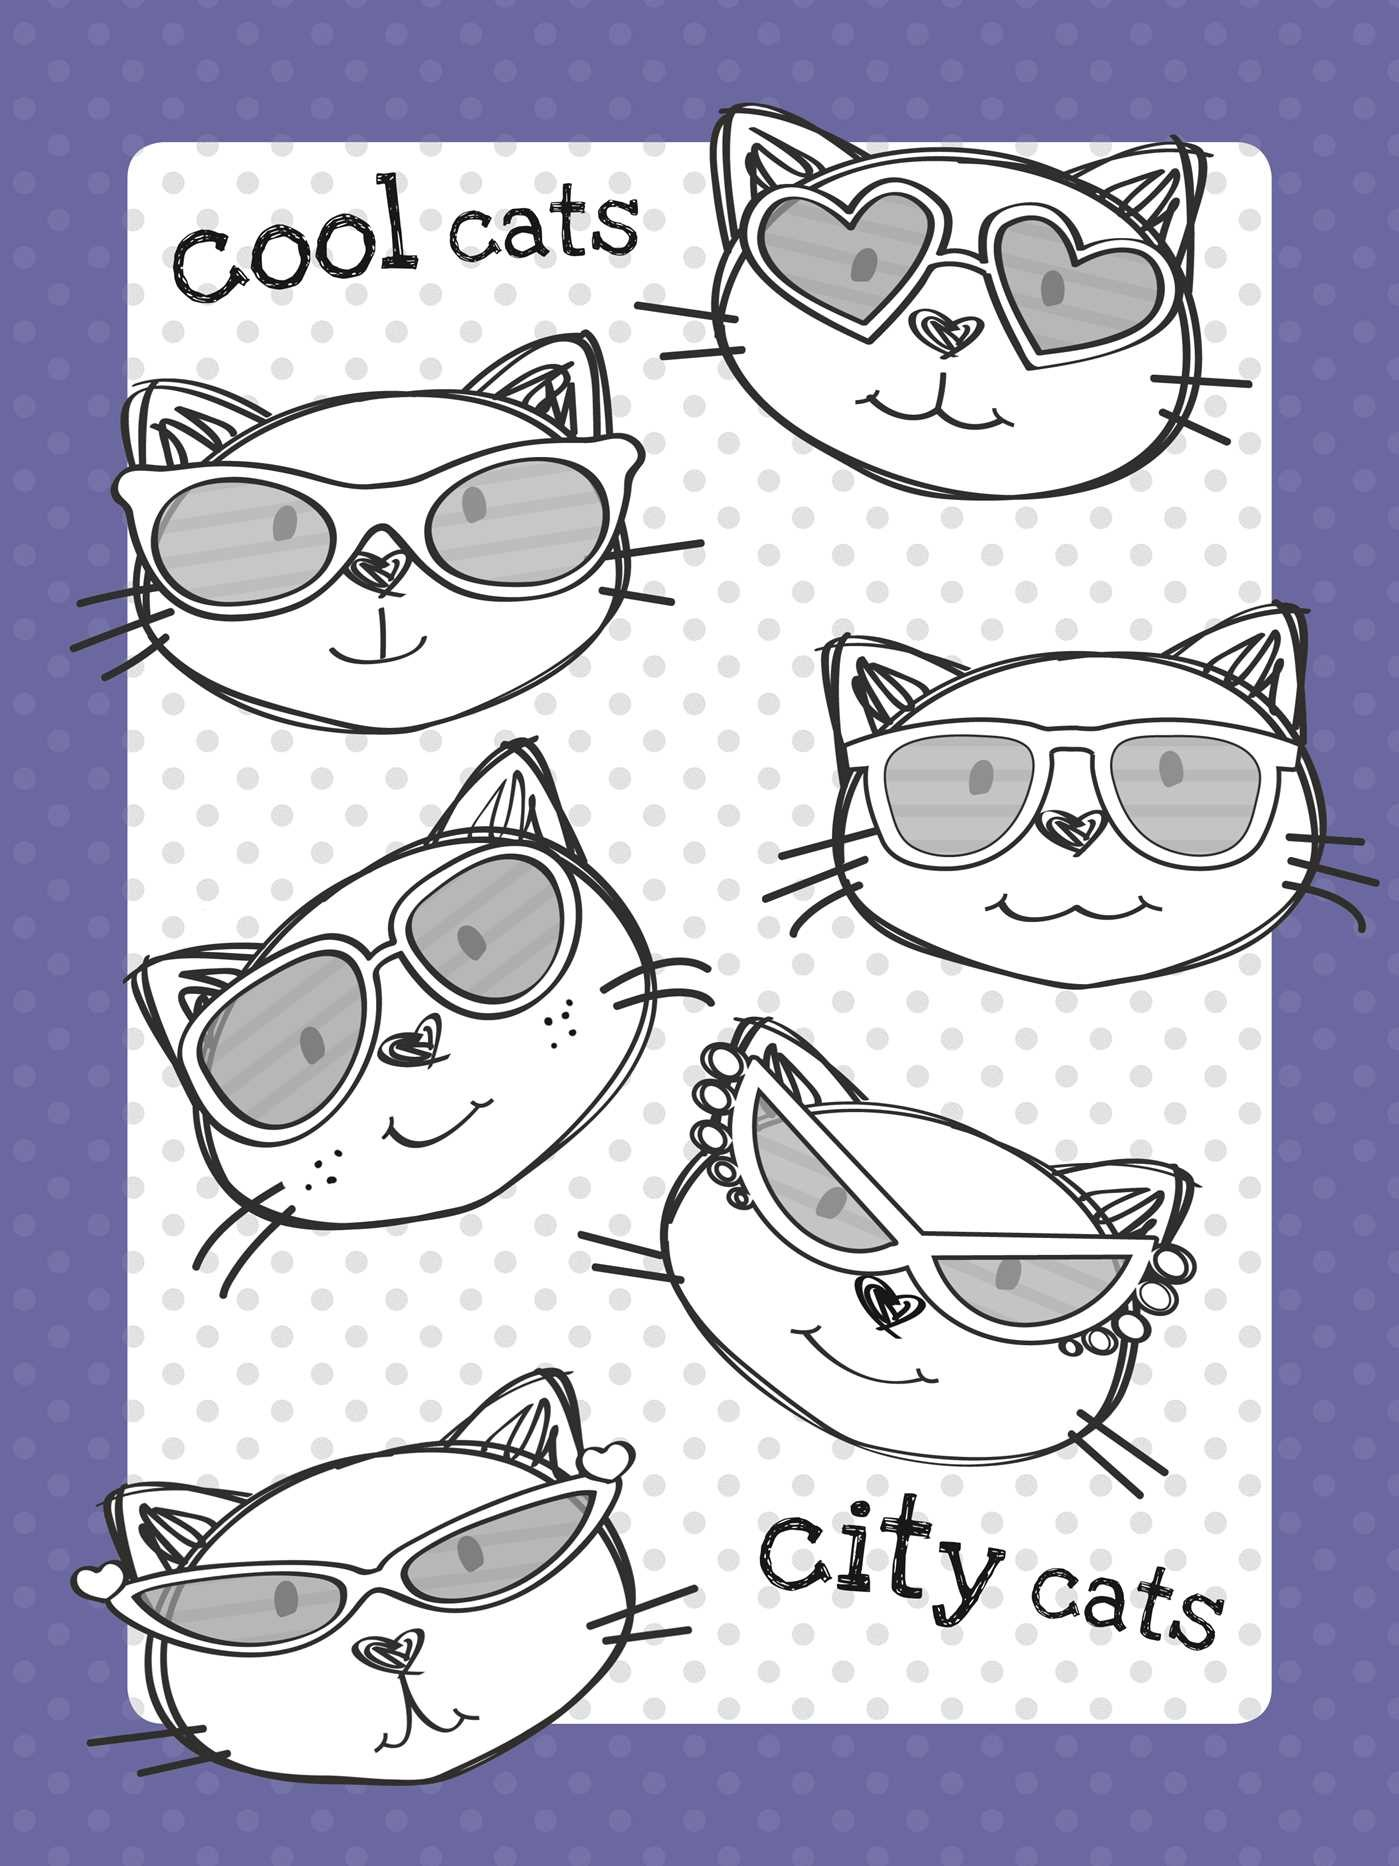 The Too Cute Coloring Book Kittens 9781499802061in01